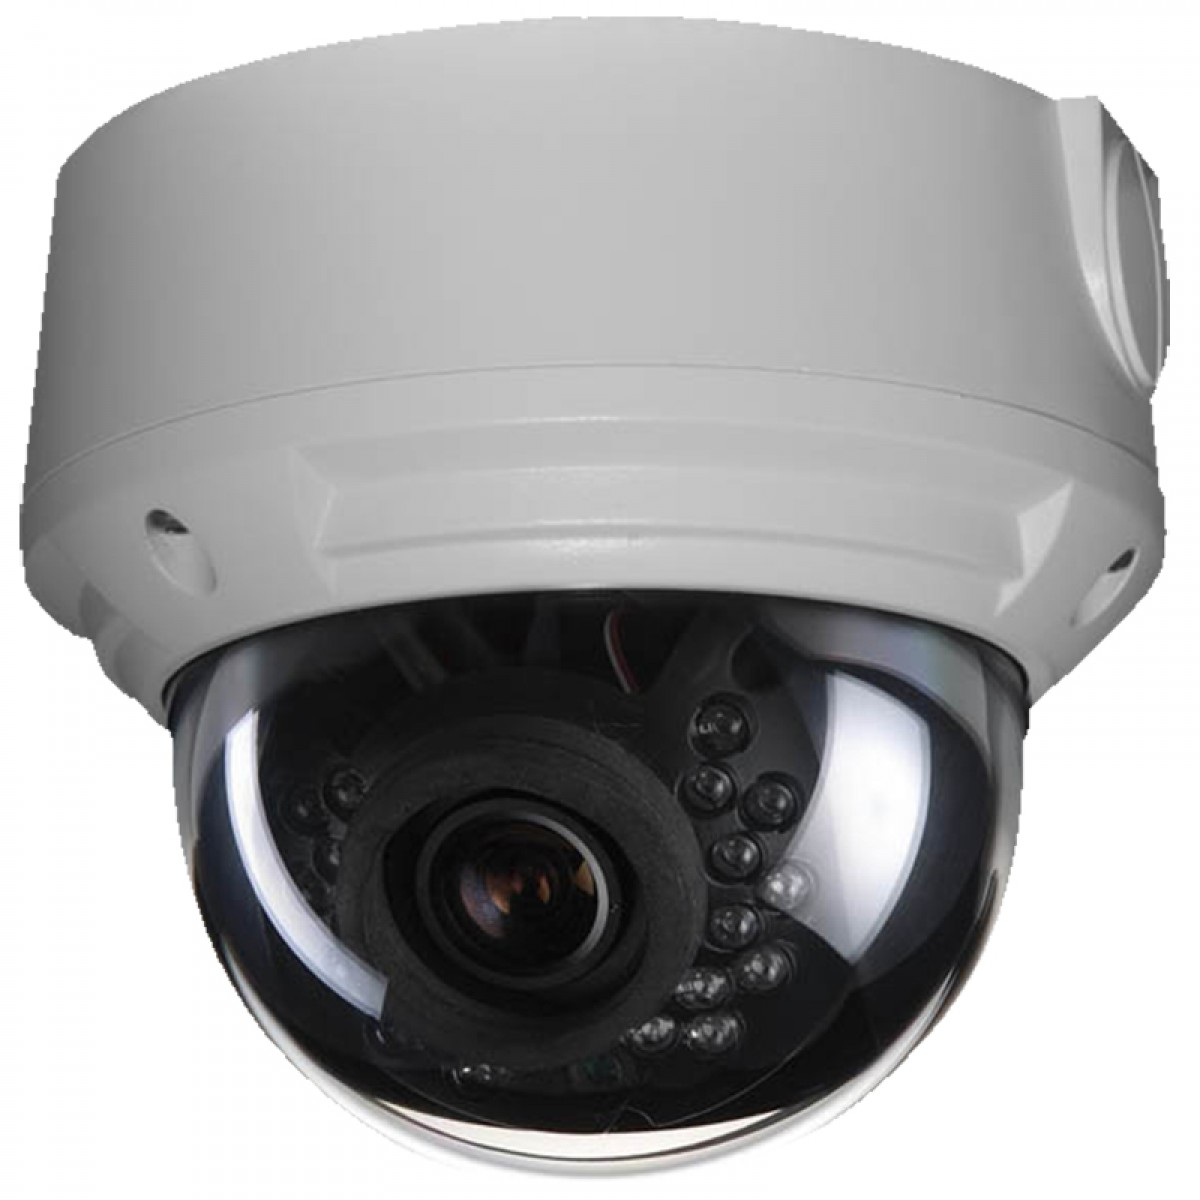 2mp ir vandal dome ip camera cameras products. Black Bedroom Furniture Sets. Home Design Ideas